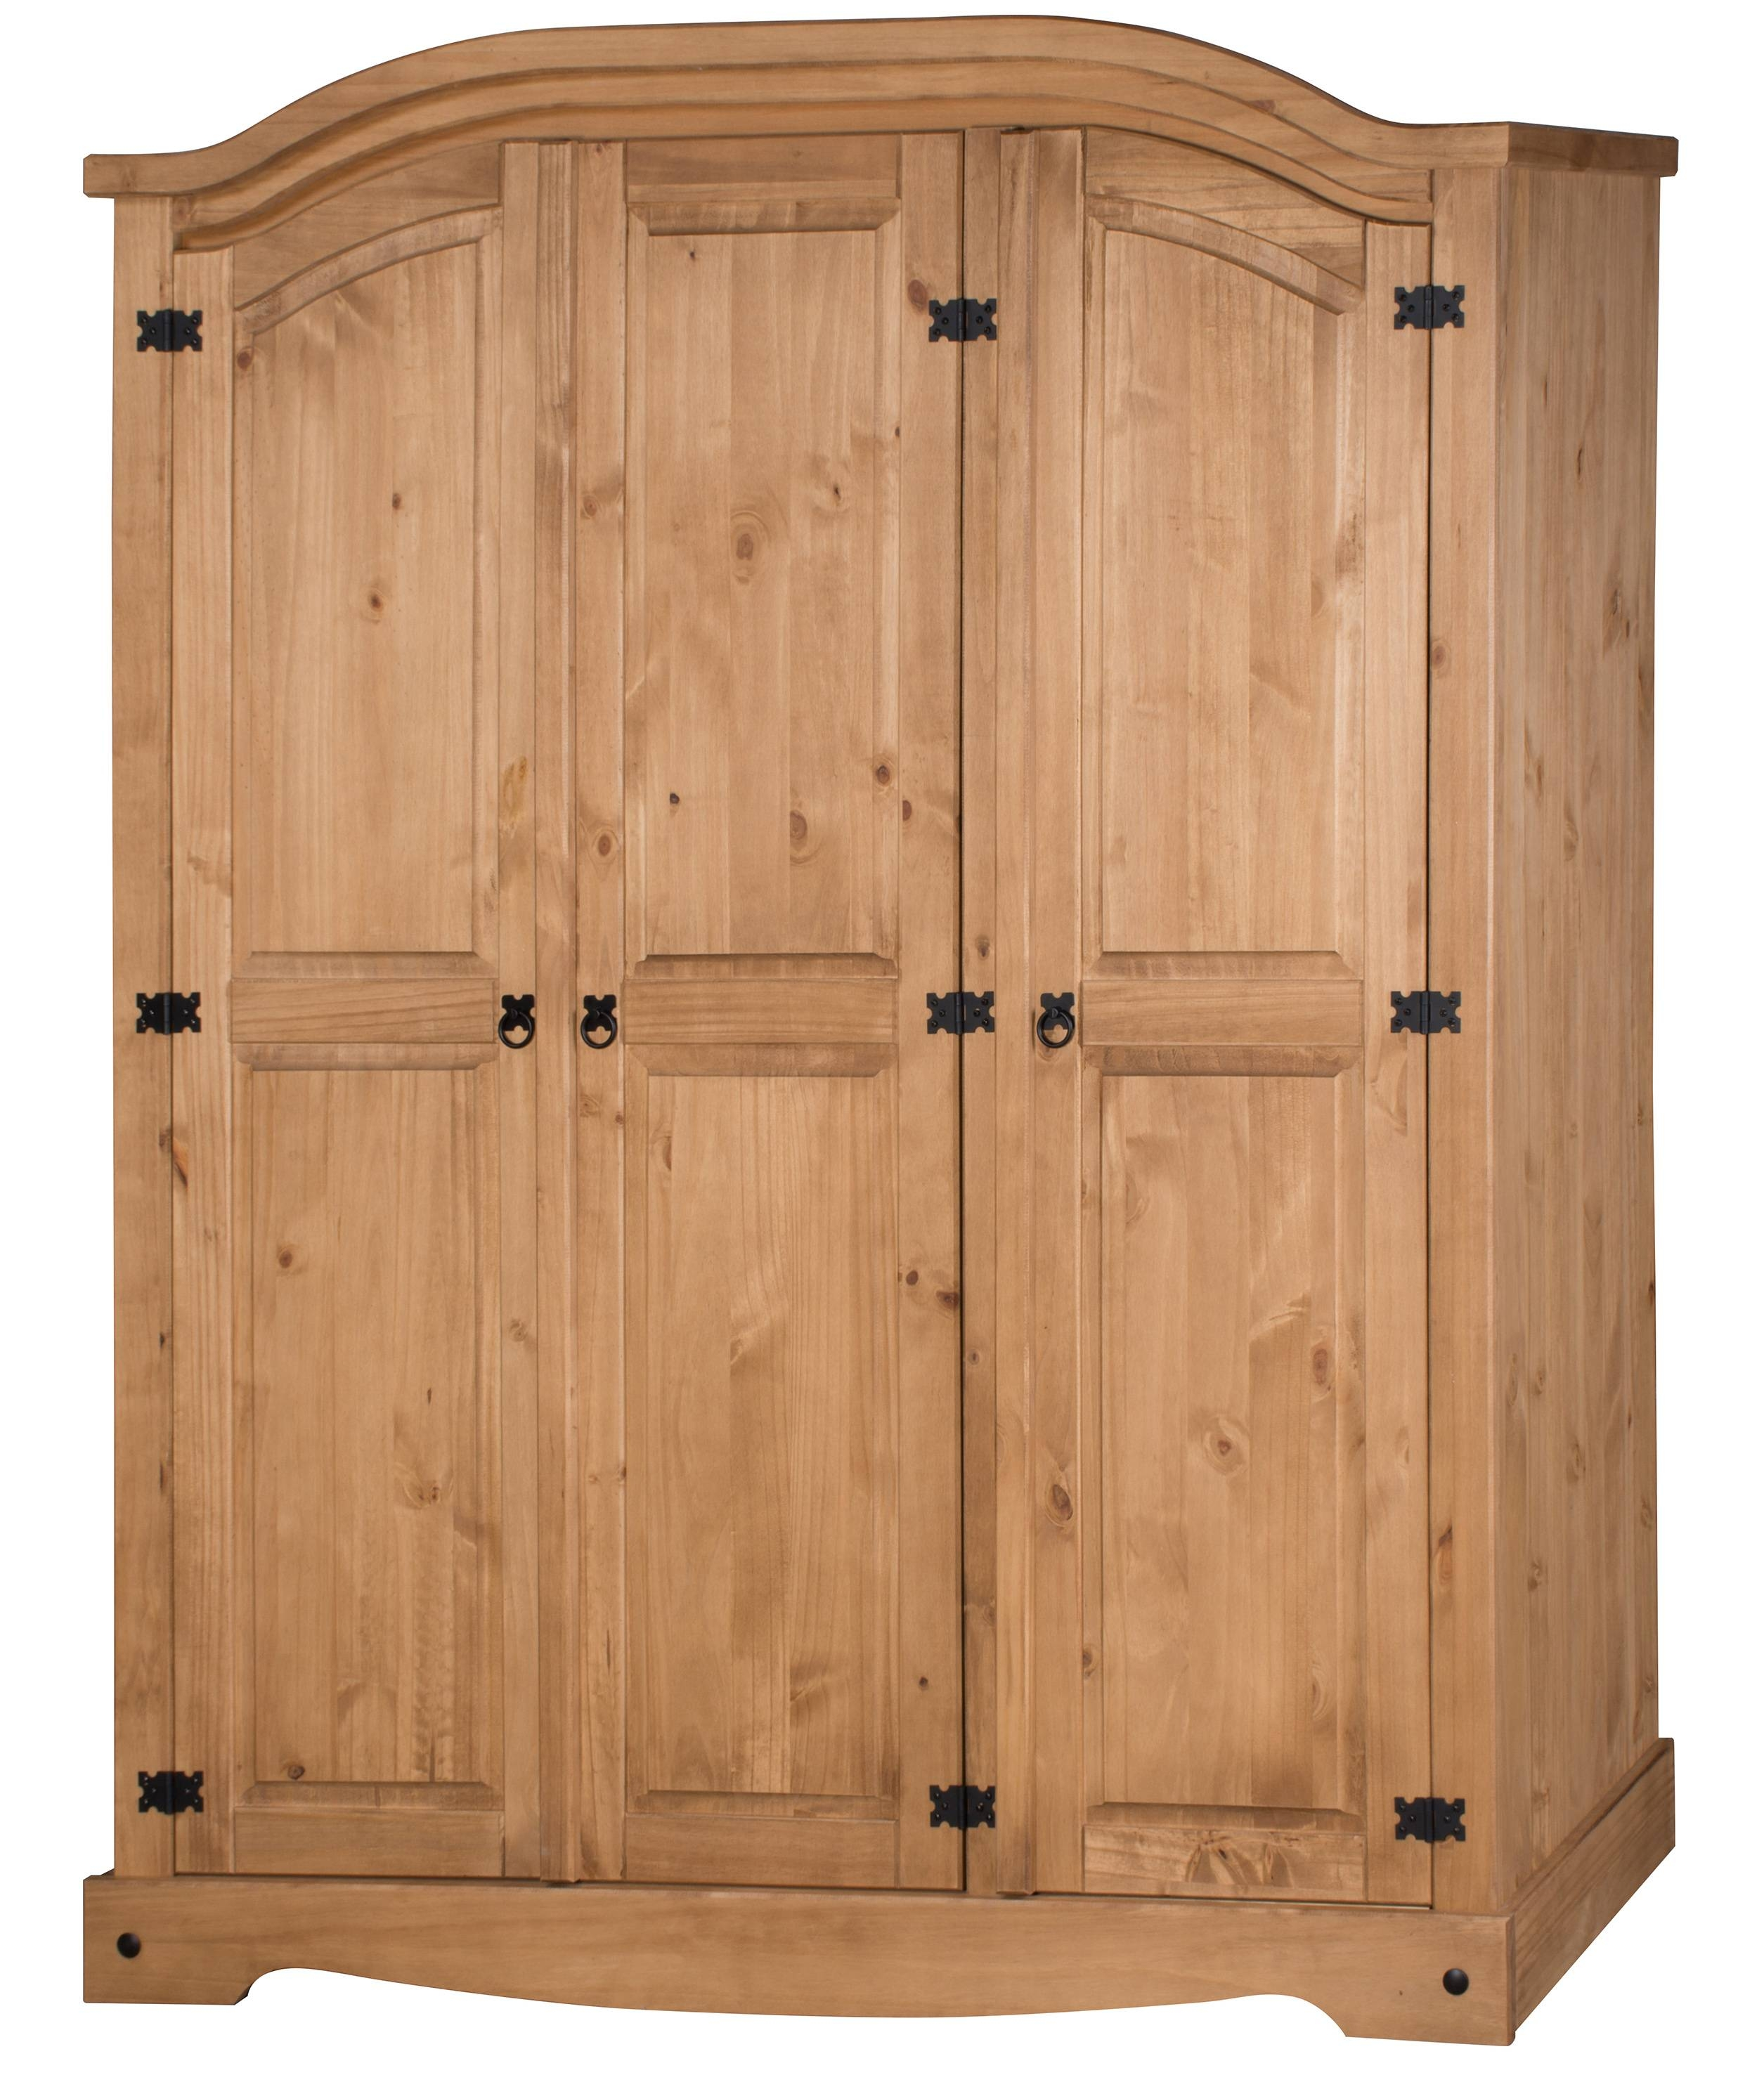 Corona 3 Door Arch Top Wardrobe with regard to Corona Wardrobes With 3 Doors (Image 5 of 15)